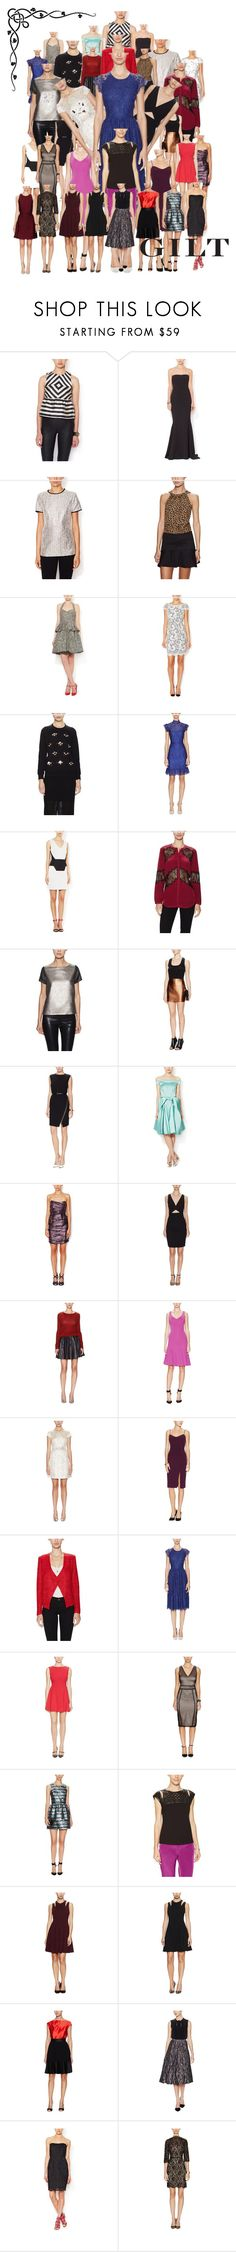 """""""#ComeTogether: Gilt Contest"""" by ainsthetic ❤ liked on Polyvore featuring Dolce Vita, Zac Posen, Shoshanna, ZAC Zac Posen, Allison Collection, Aijek, TIBI, The Letter, Trina Turk and Ava & Aiden"""